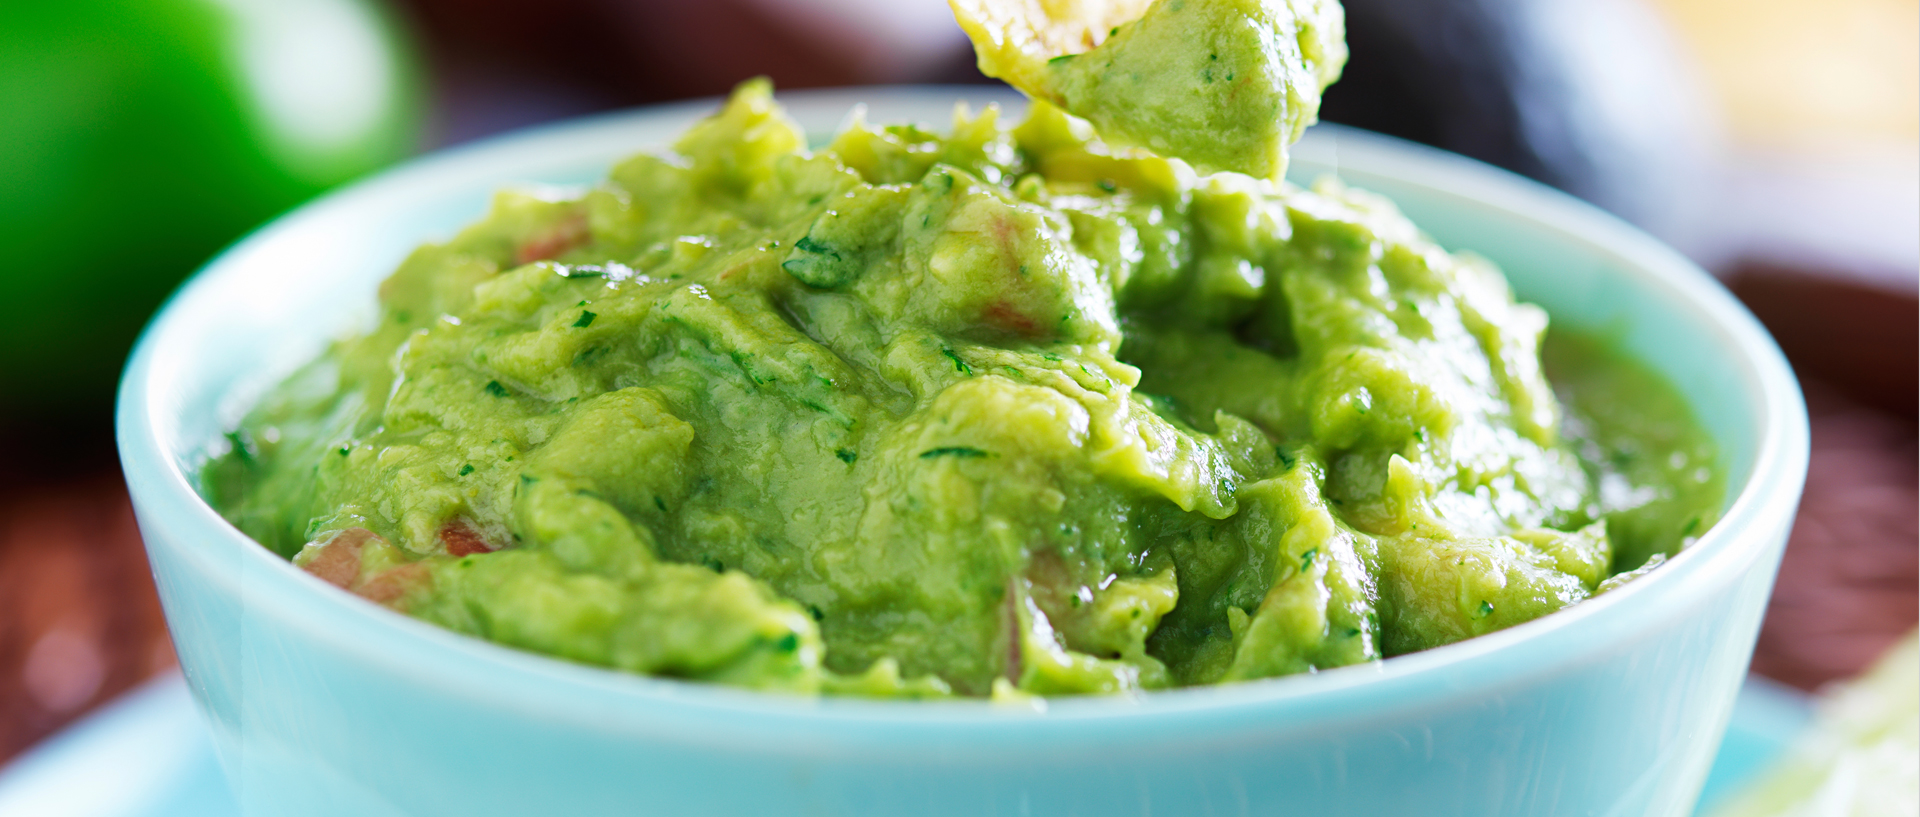 The Best Store Bought Brands Of Guacamole Consumer Reports